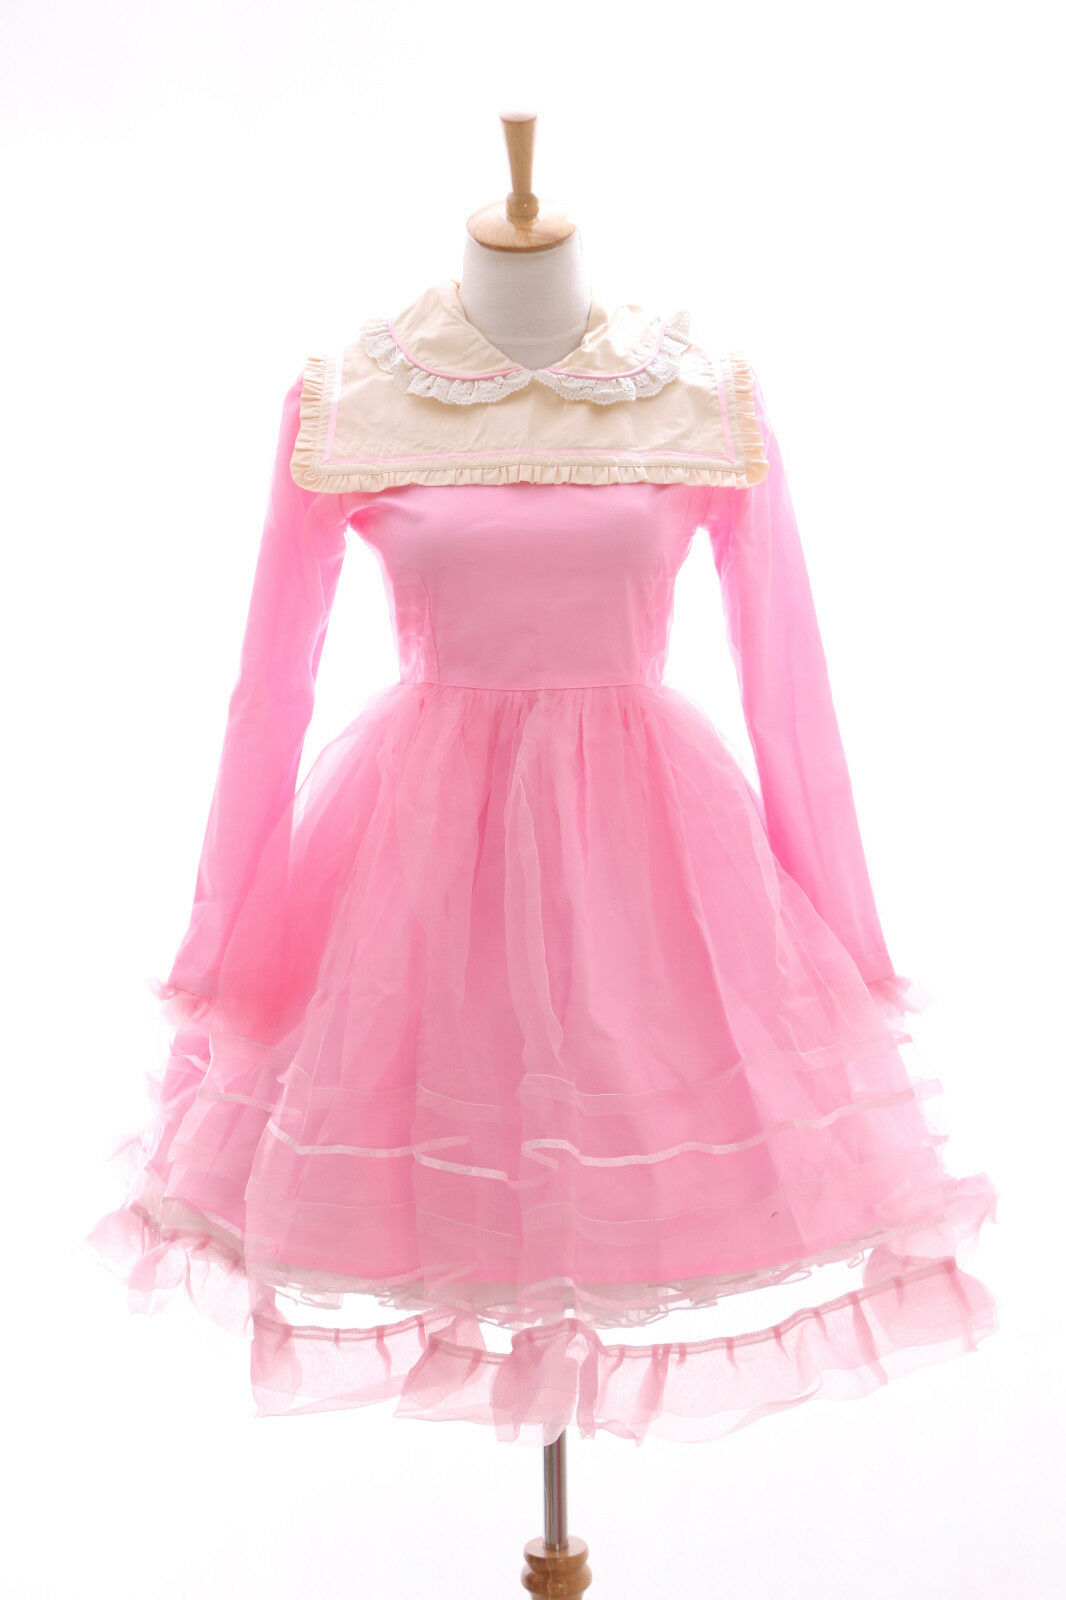 Jl-565-2a Pink Gothic Lolita Sweet Japanese Dress Costume Dress Cosplay Babydoll